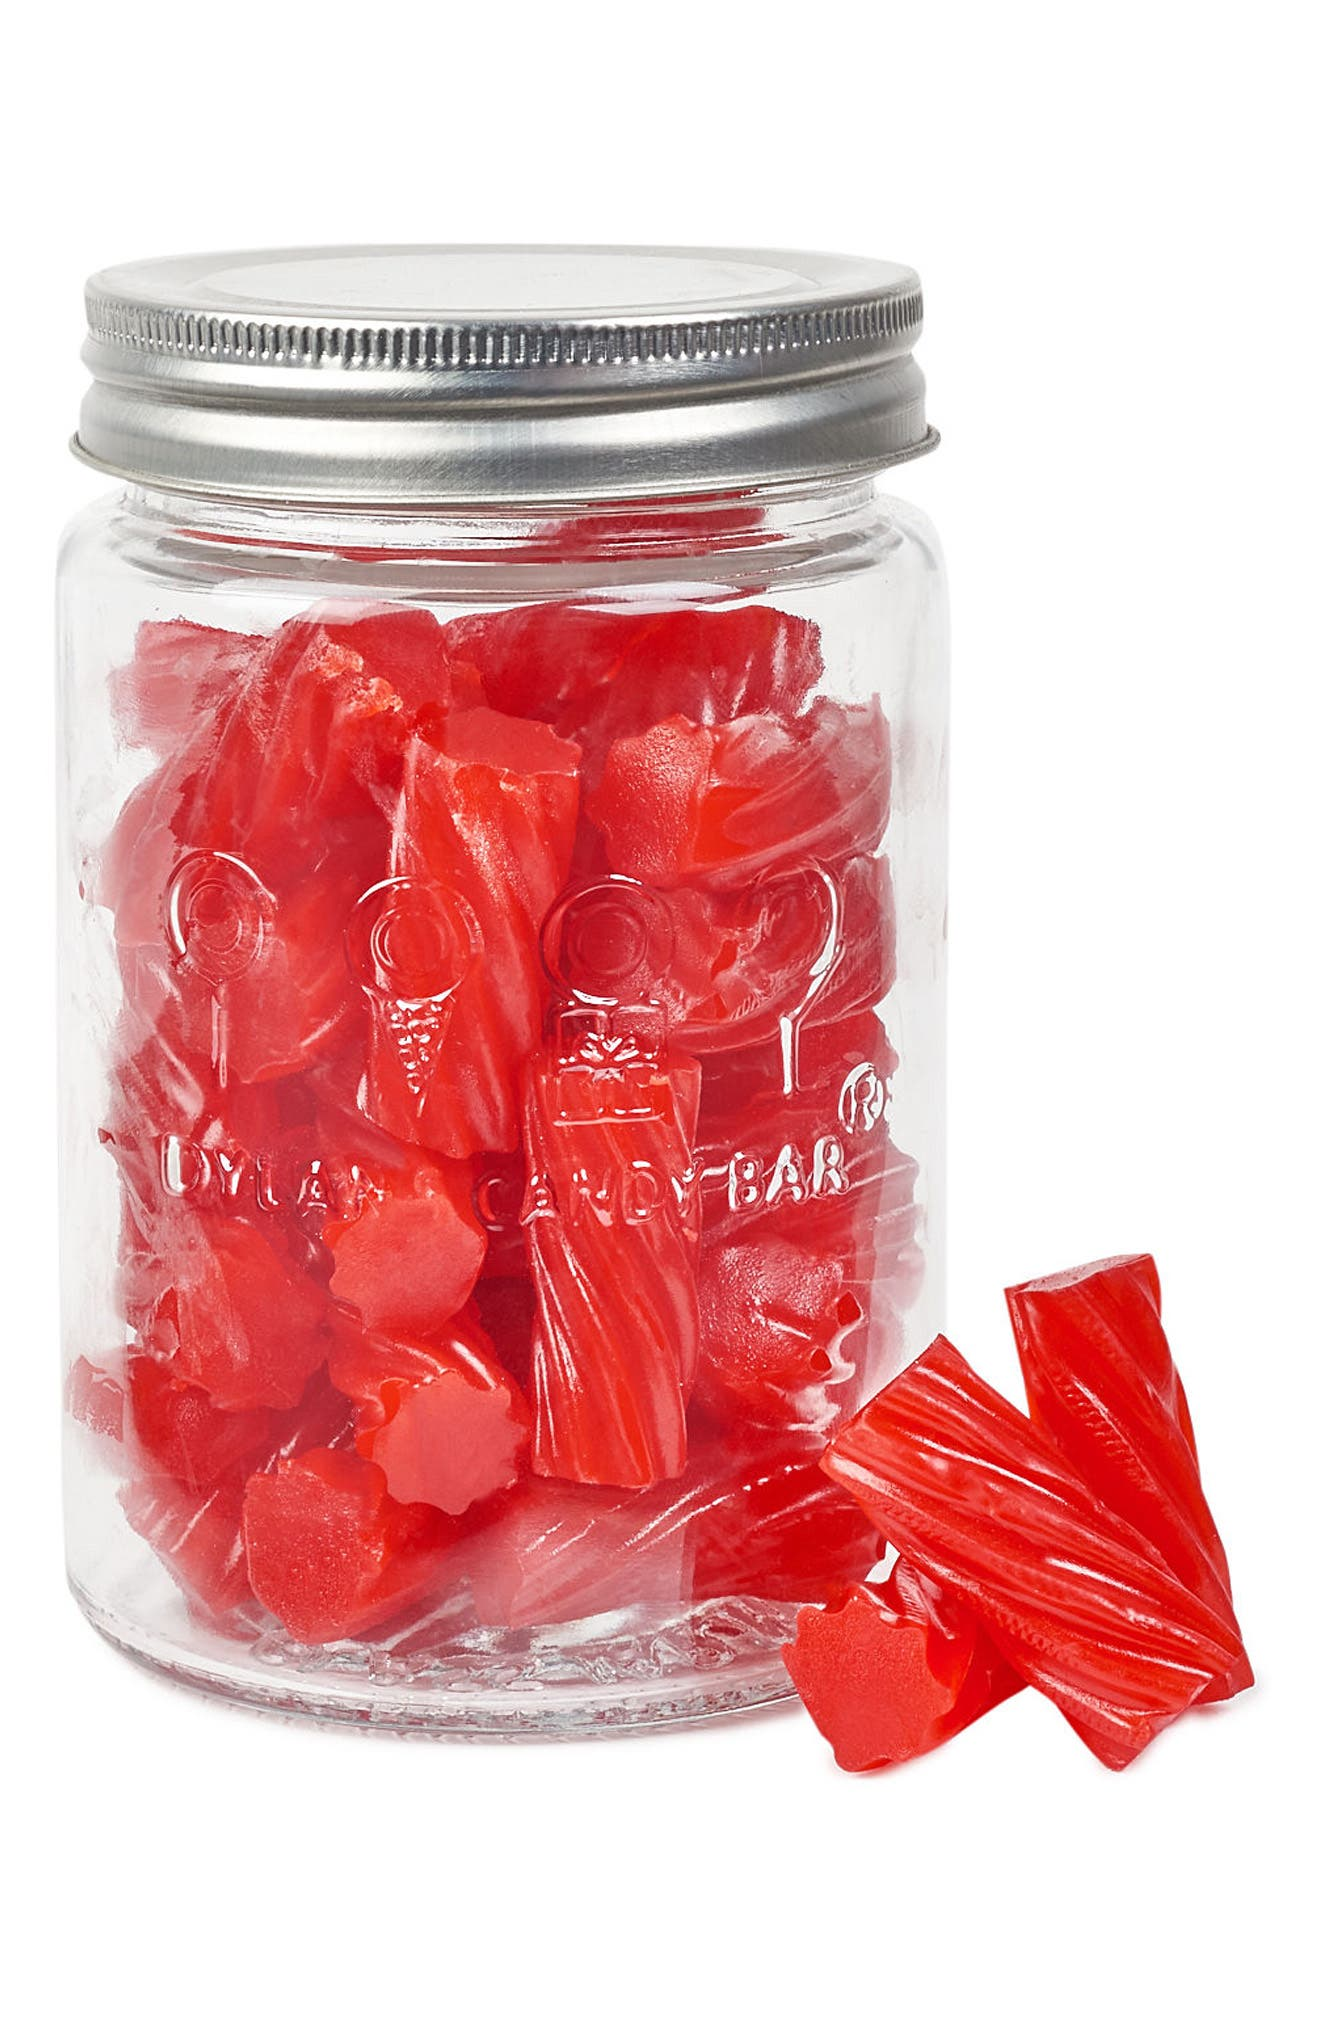 Red Licorice Filled Mason Jar,                         Main,                         color, 600